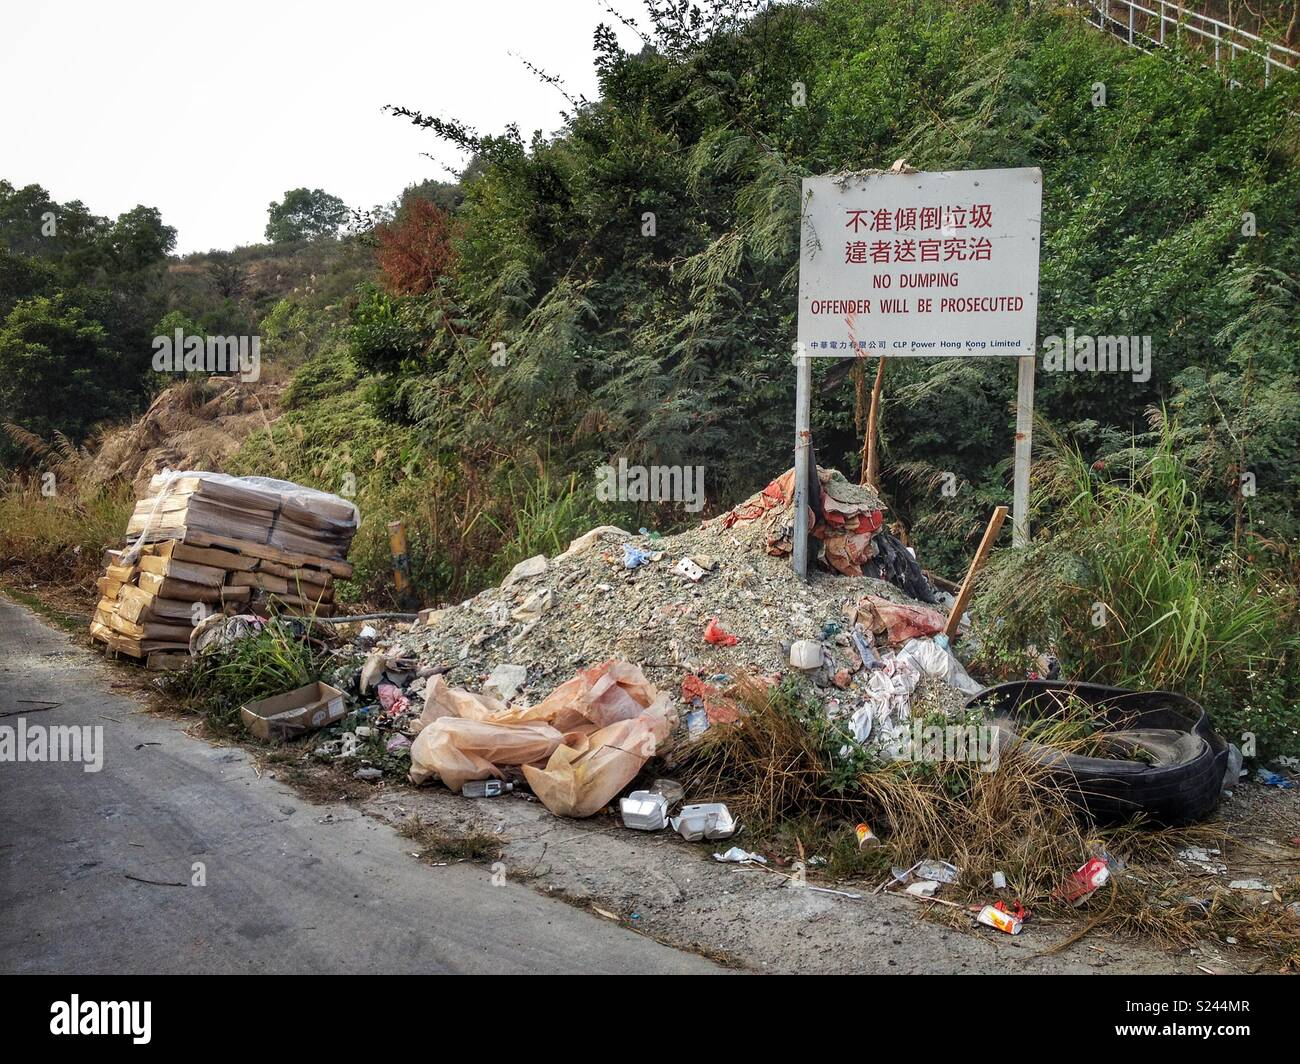 Bilingual 'No Dumping' sign in Chinese and English with illegally dumped building waste and a pallet of rotting fish, near the West New Territories Landfill, Nim Wan, Tuen Mun, Hong Kong - Stock Image